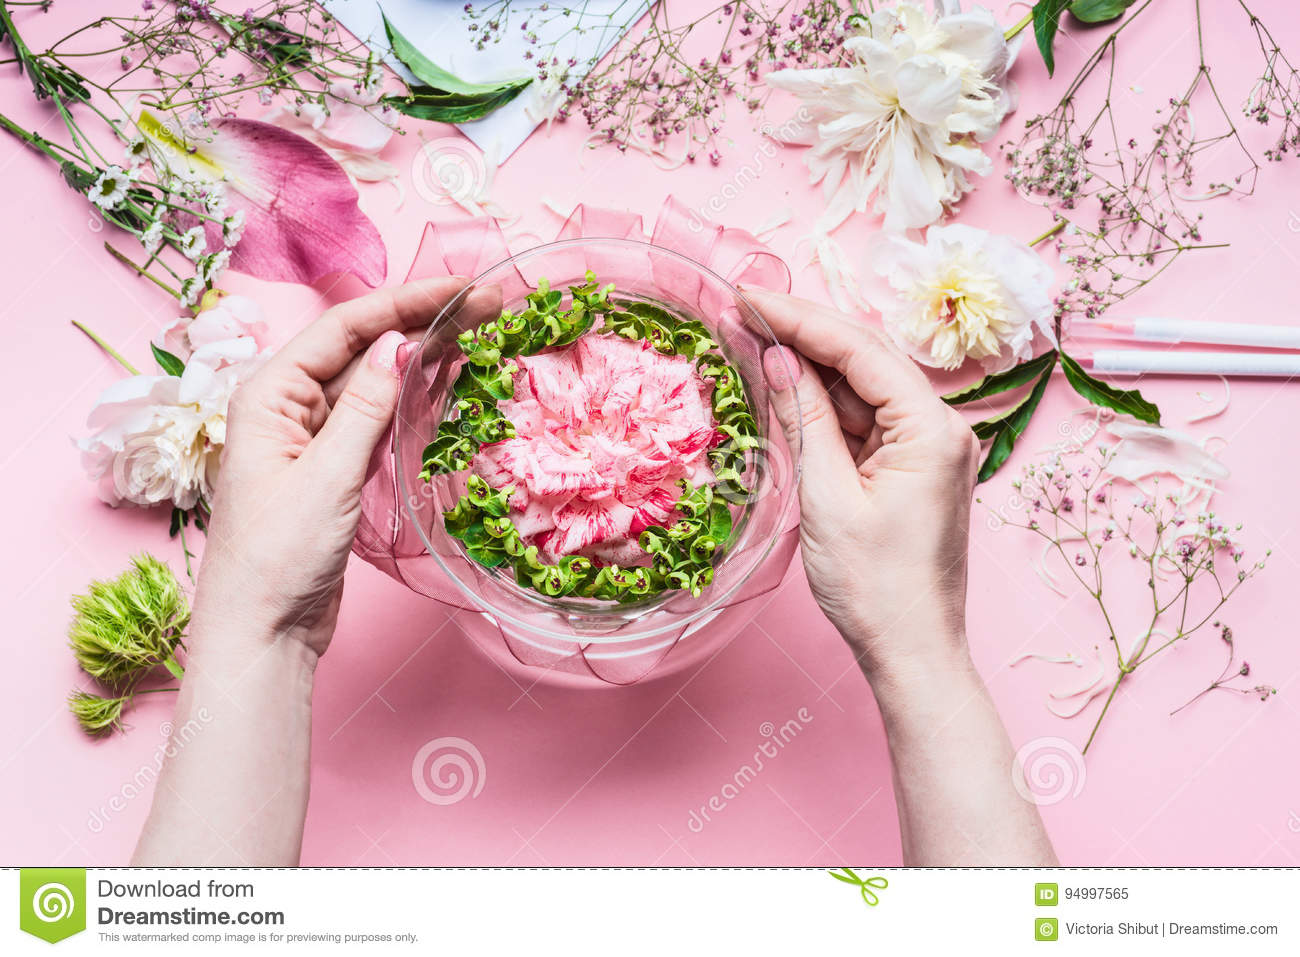 Pink Florist workspace with Lilies and other flowers, glass vase with water. Female hands making Festive Flowers arrangements